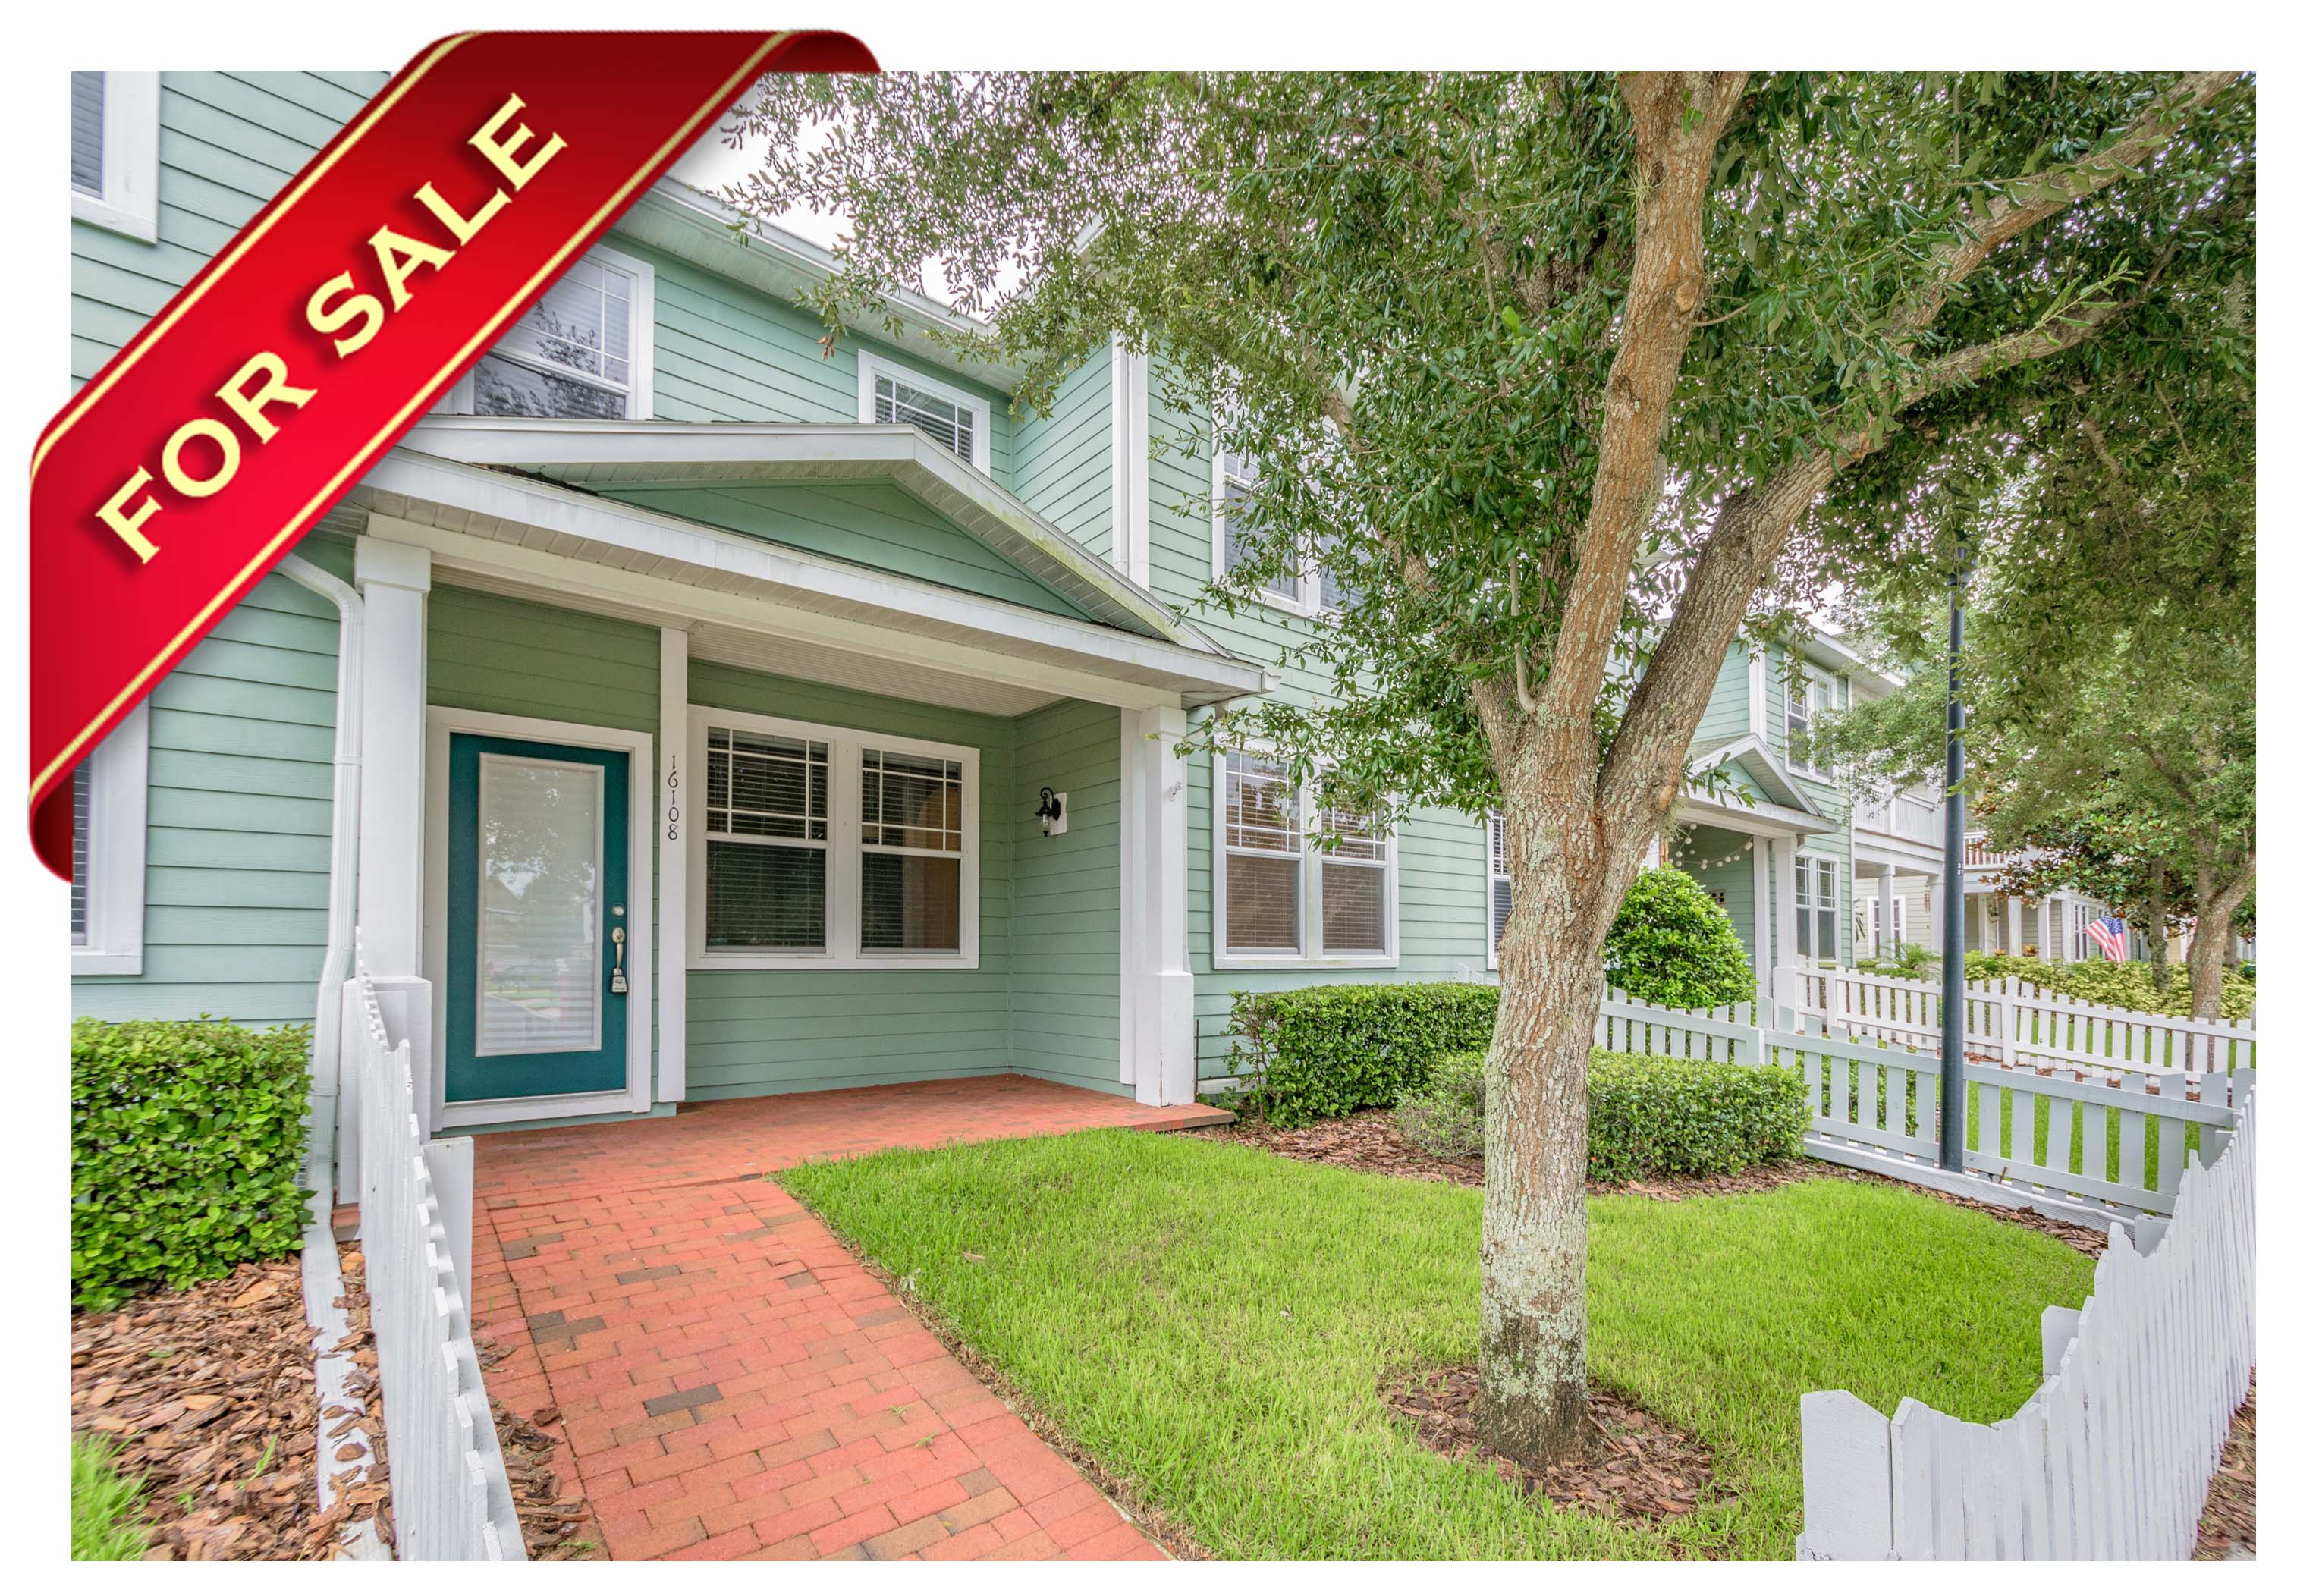 3 Bedroom Townhome For Sale in FishHawk Ranch